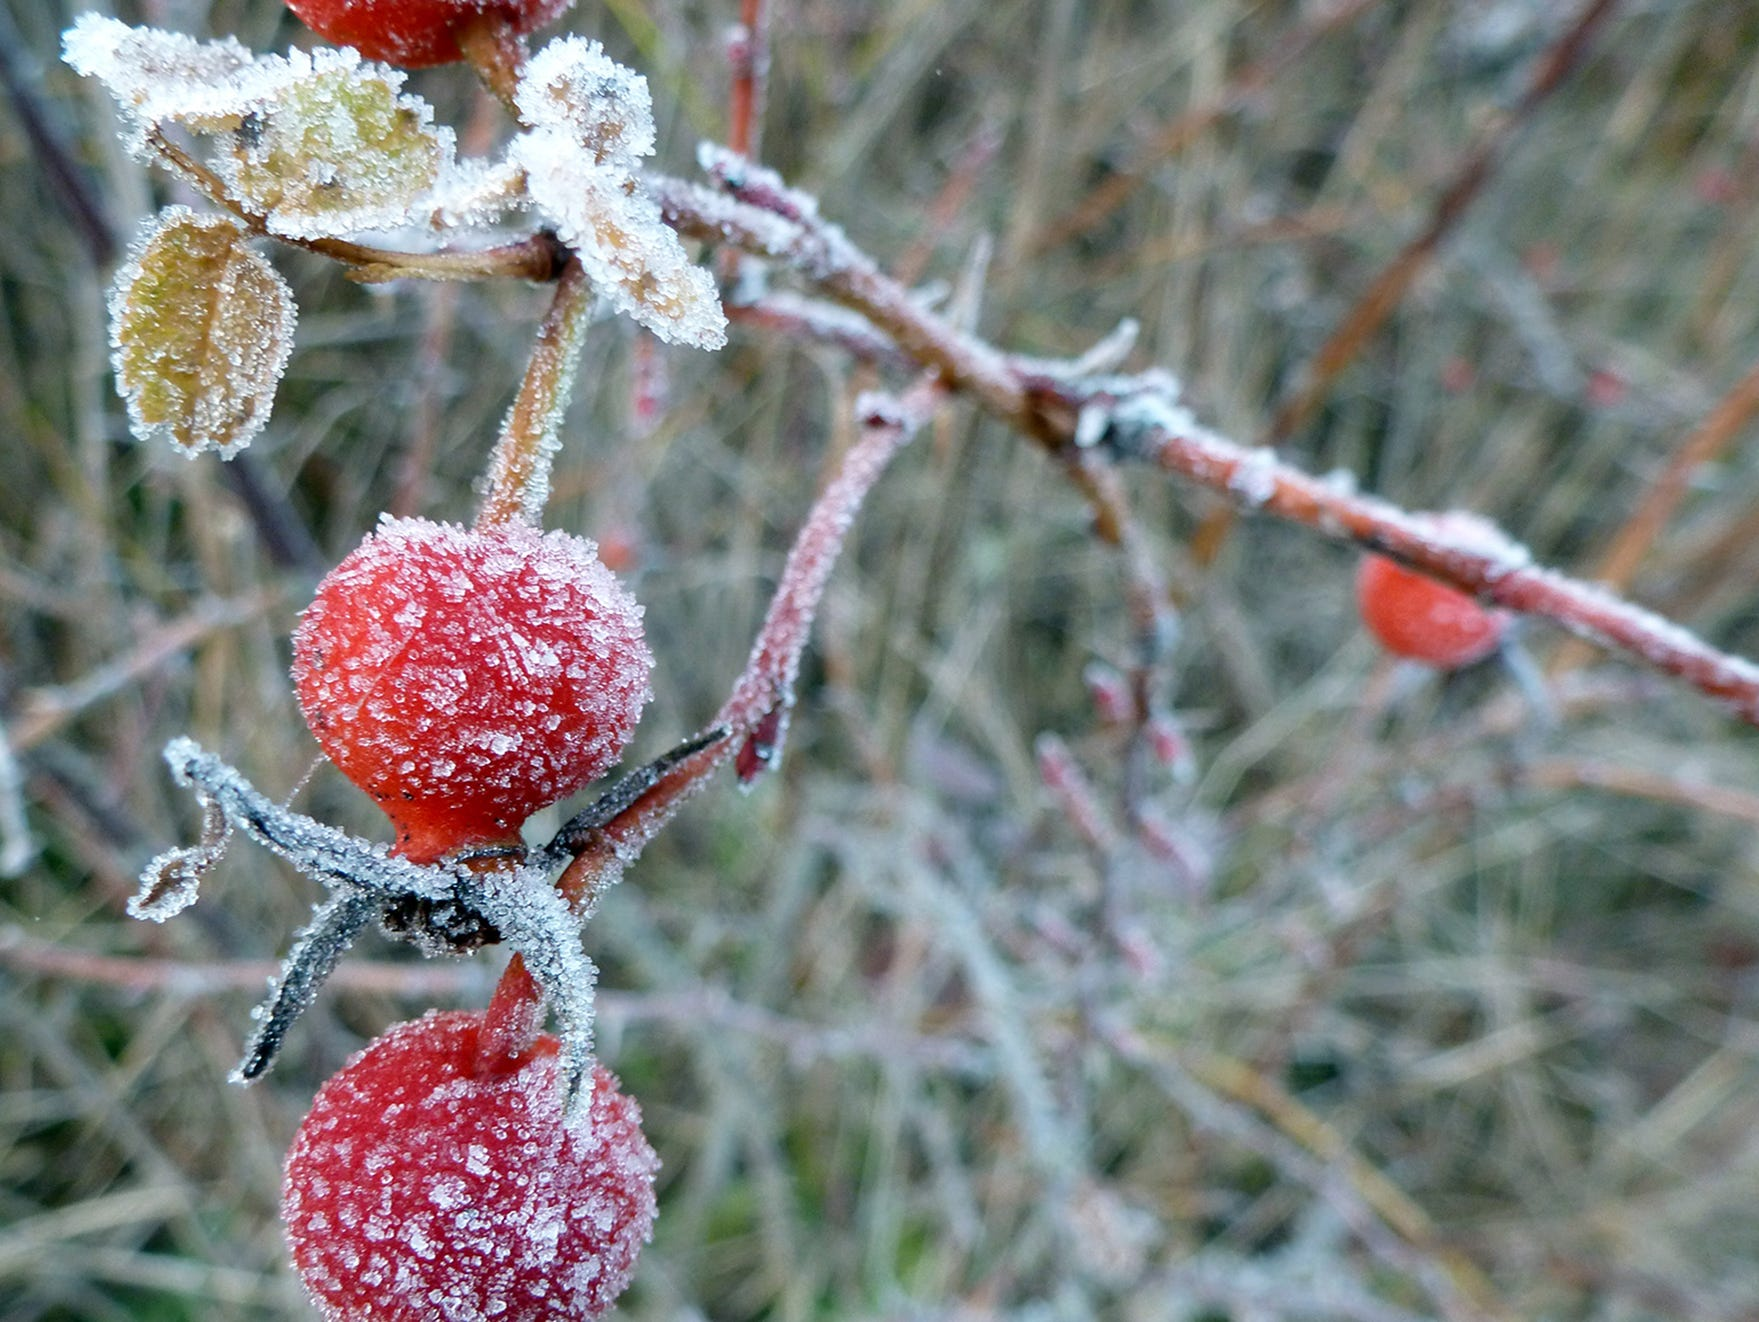 Morning frost sticks to rose hips at Old Mill Park in Silverdale on Tuesday, January, 15, 2019.